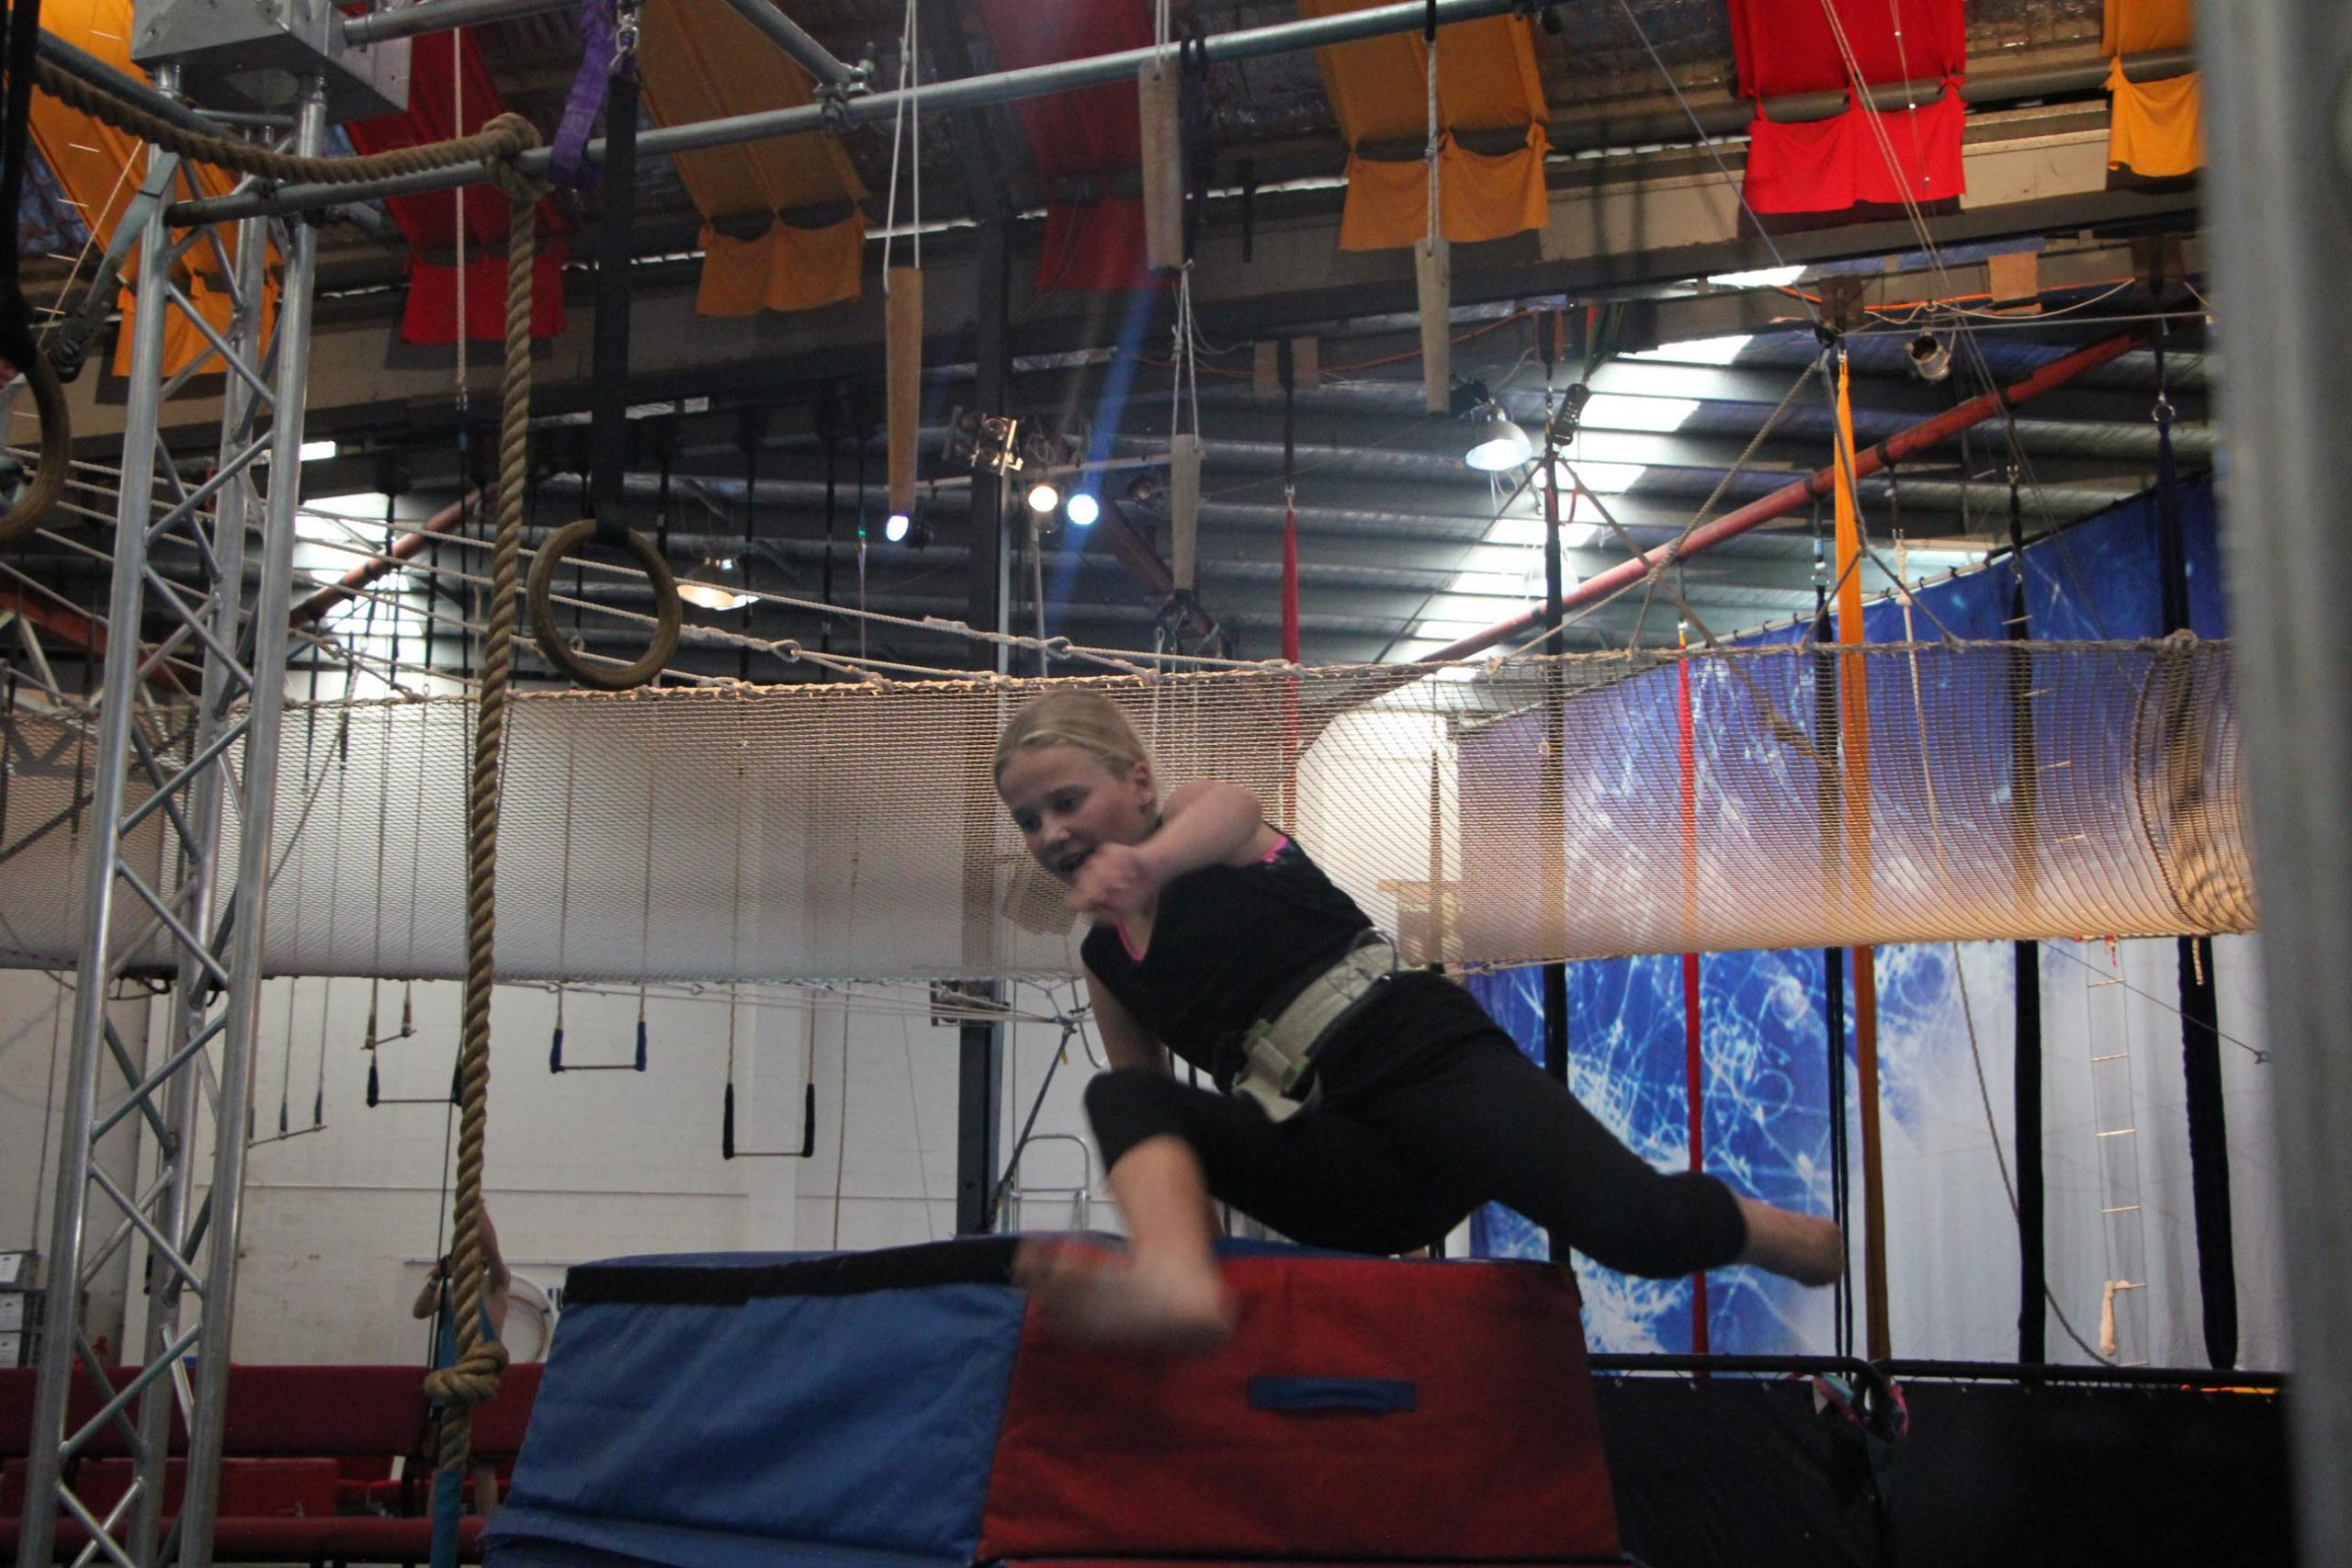 circus-arts-byron-bay-kids-teens-classes-ninja-parkour-7